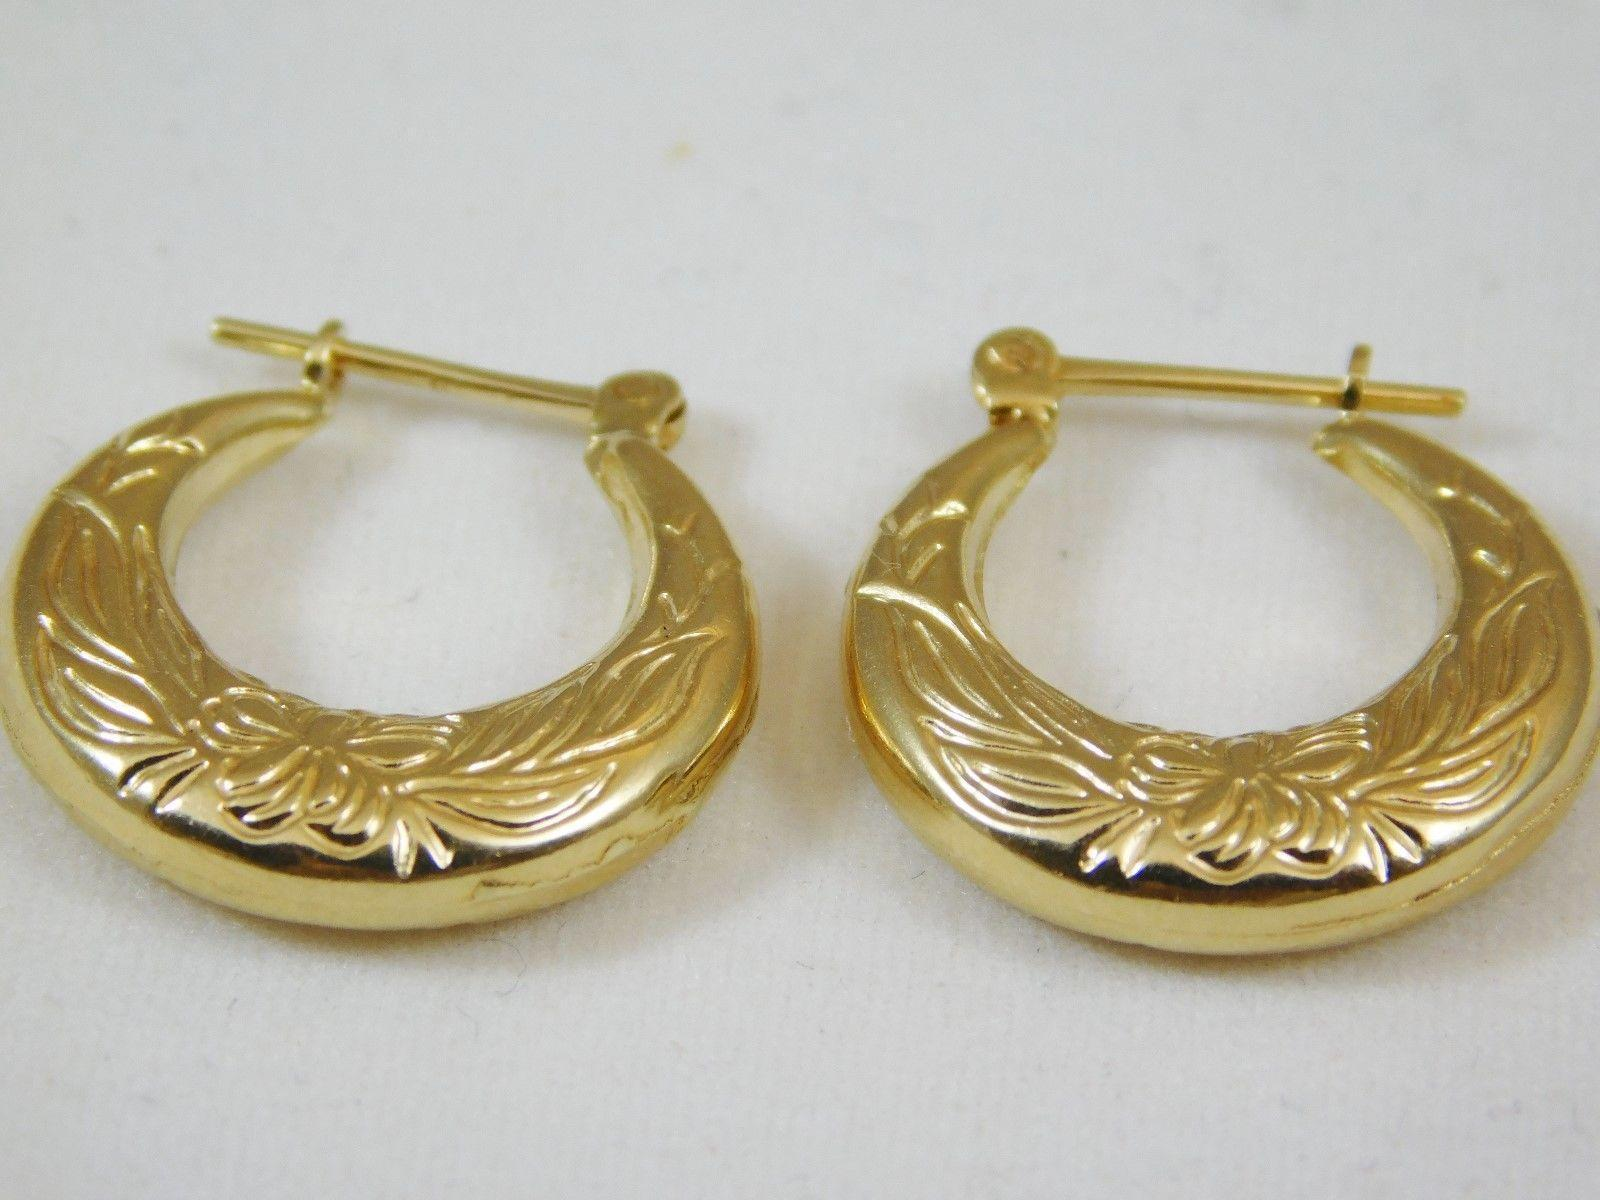 14 karat yellow gold small hoop earrings from